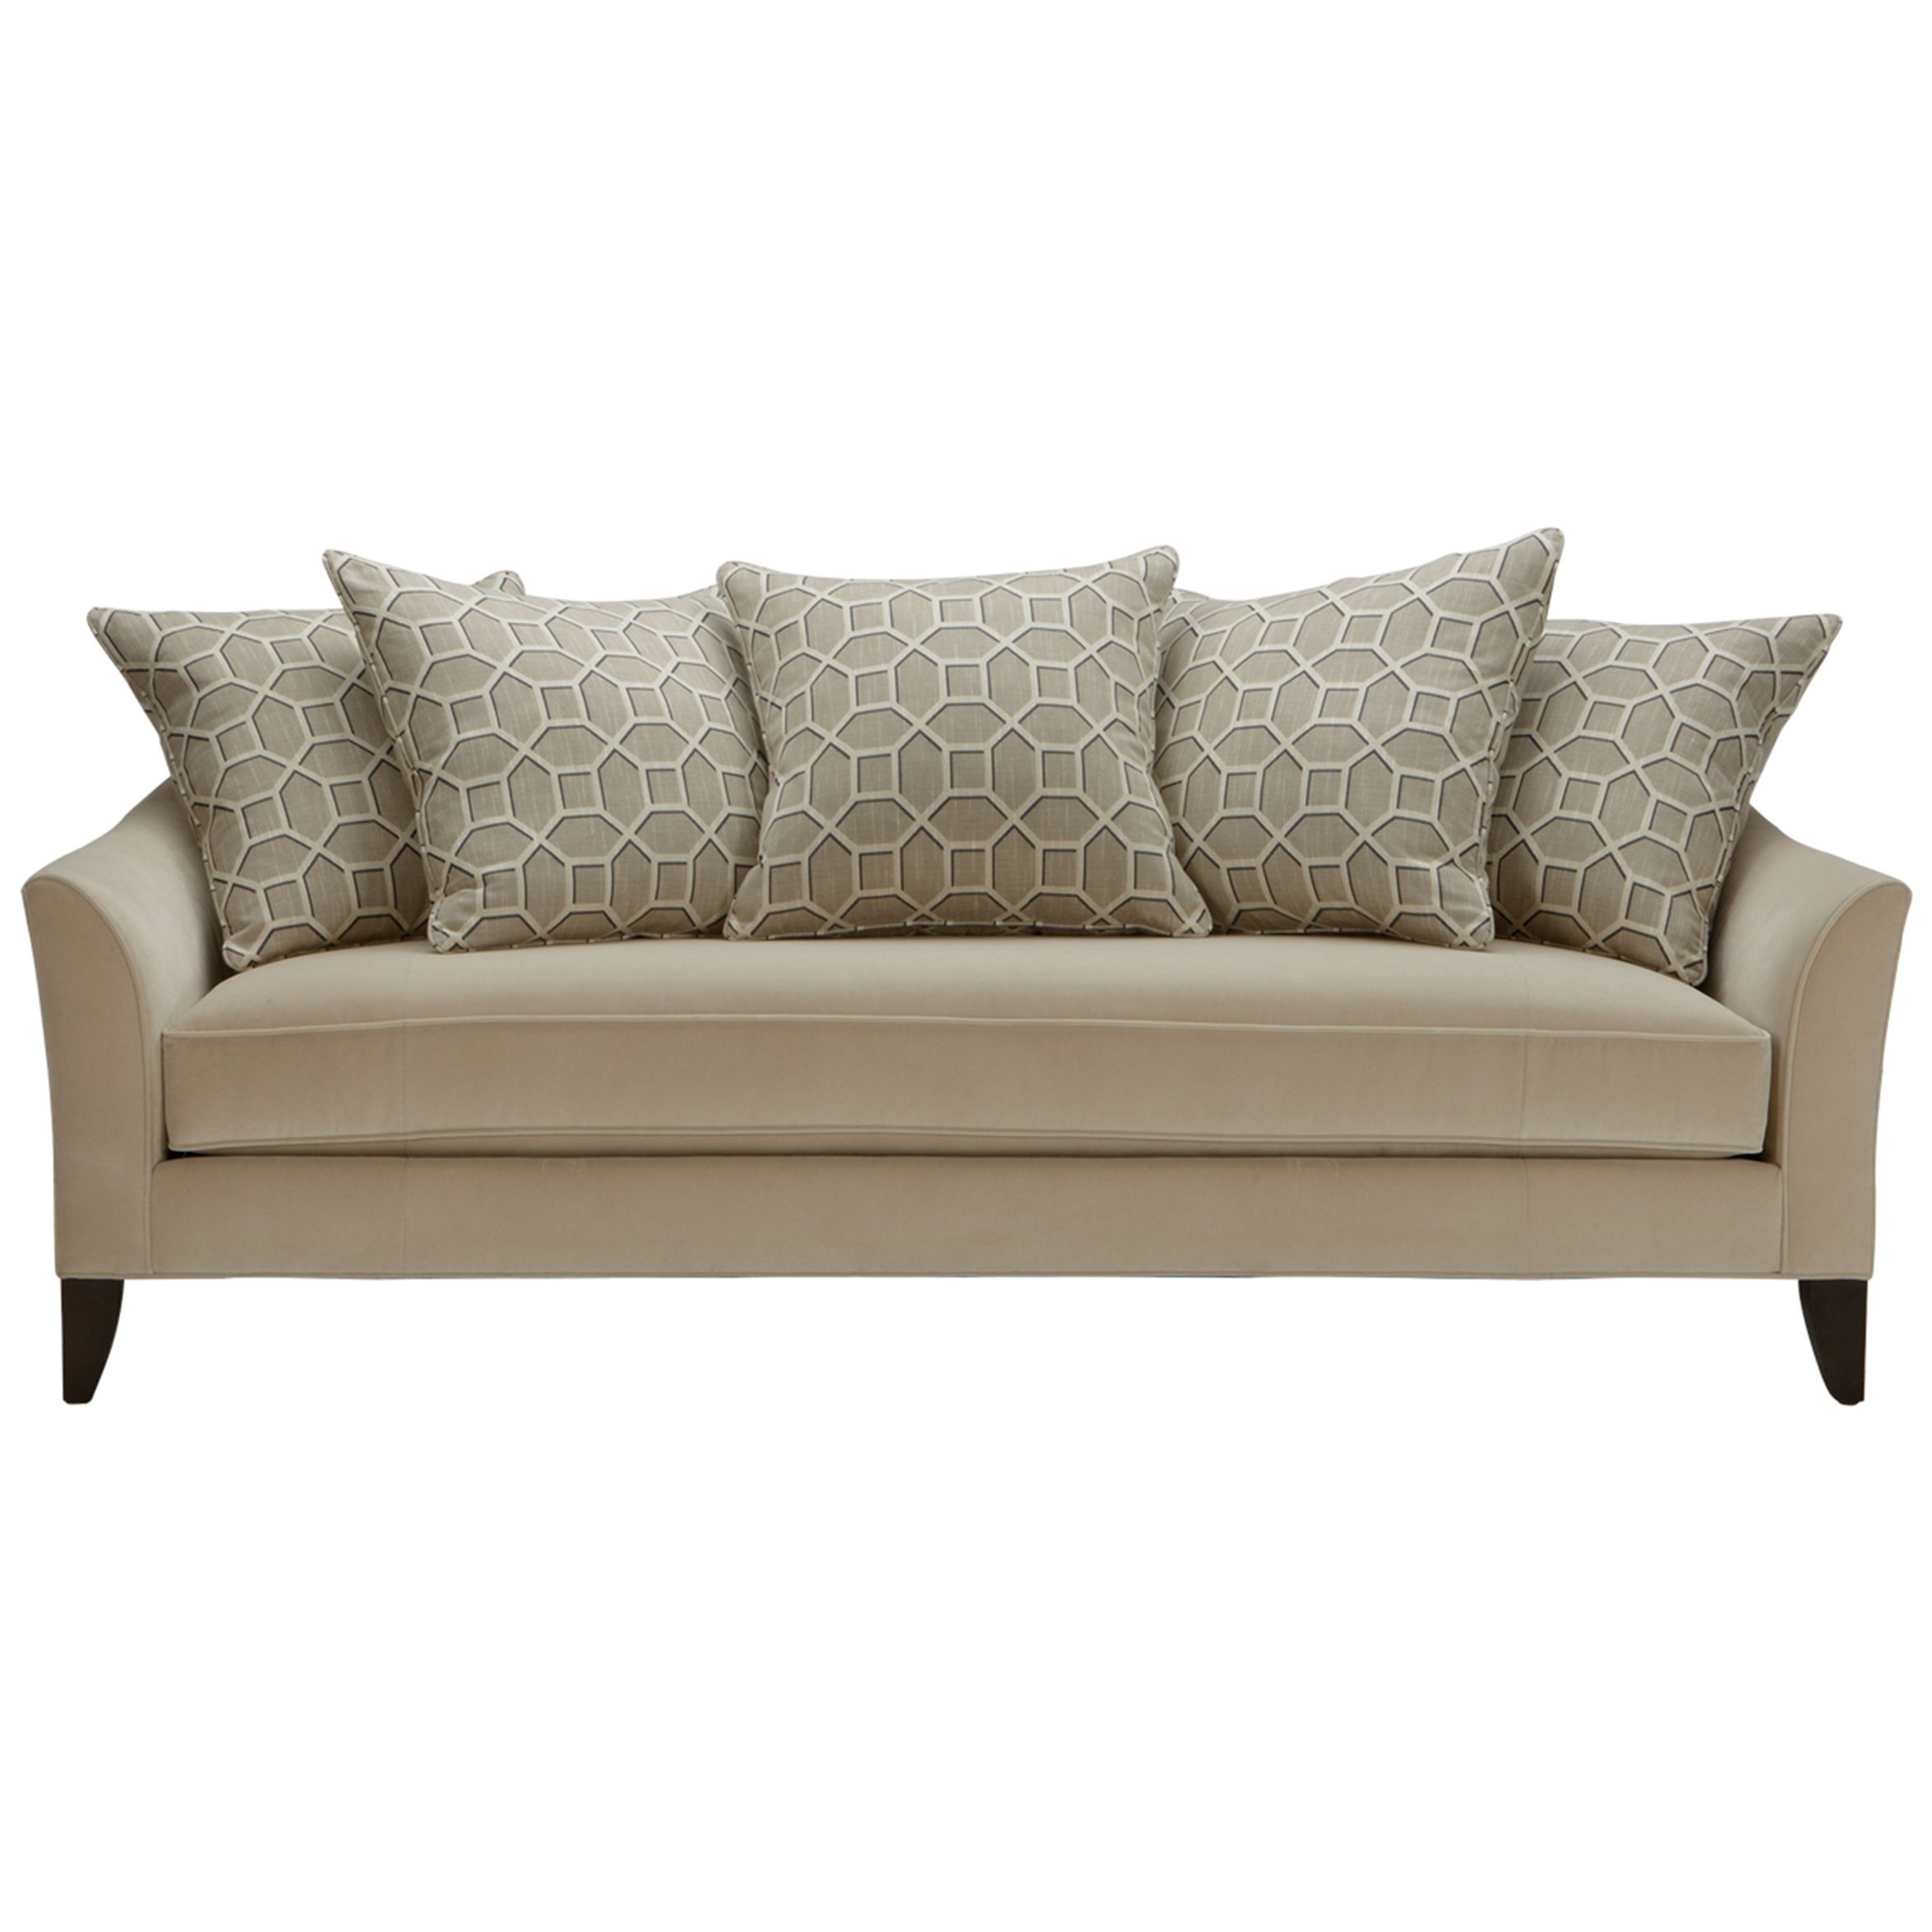 Carlotta Bench Cushion Sofa Ethan Allen Us For Window